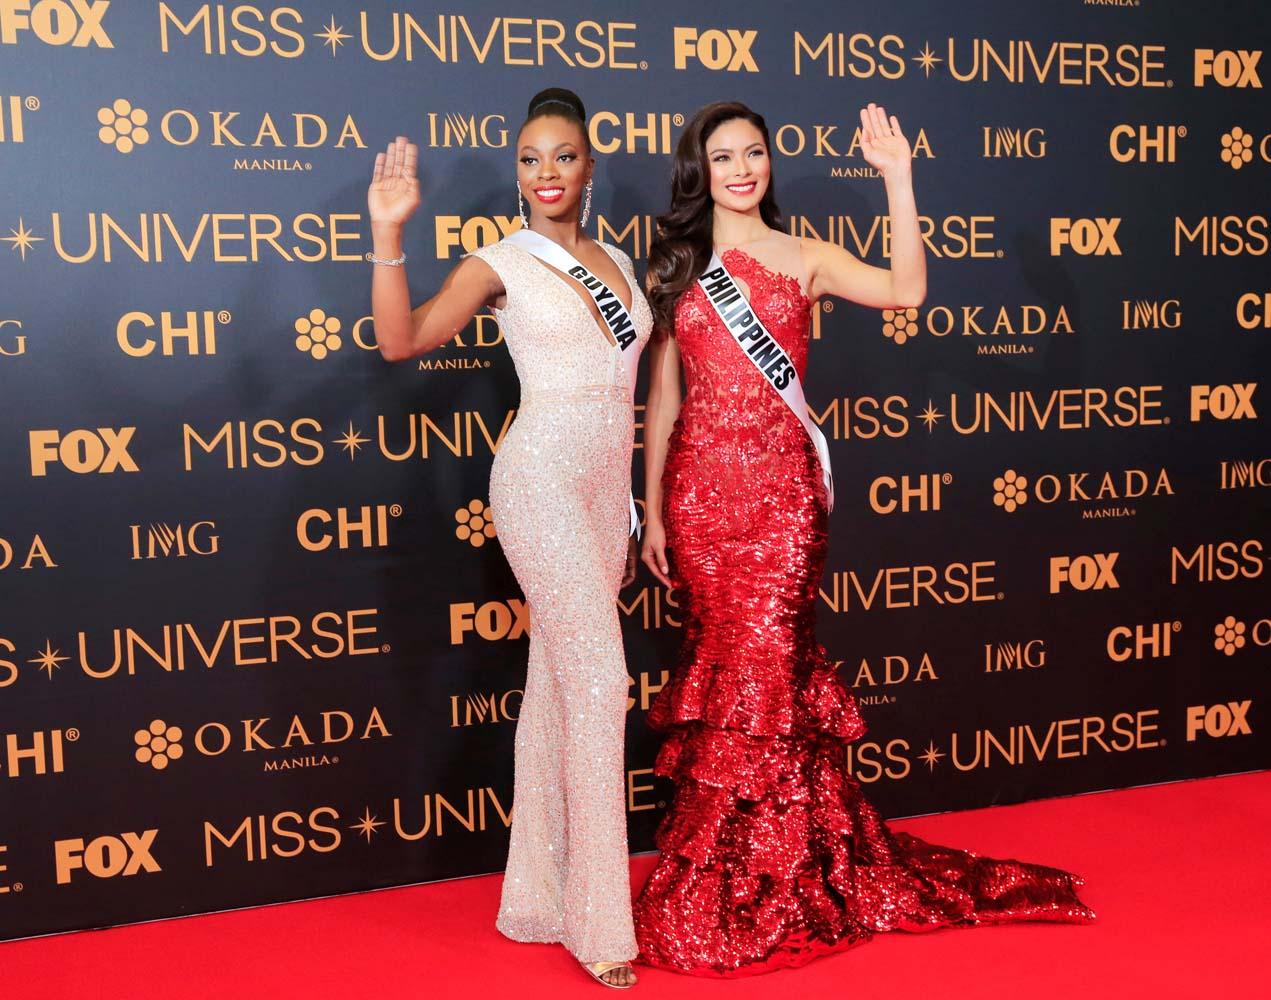 Miss Universe candidates Guyana Soyini Fraser of Guyana and Maxine Medinage of Philippines gesture for a picture during a red carpet inside a SMX convention in metro Manila, Philippines January 29, 2017. REUTERS/Romeo Ranoco